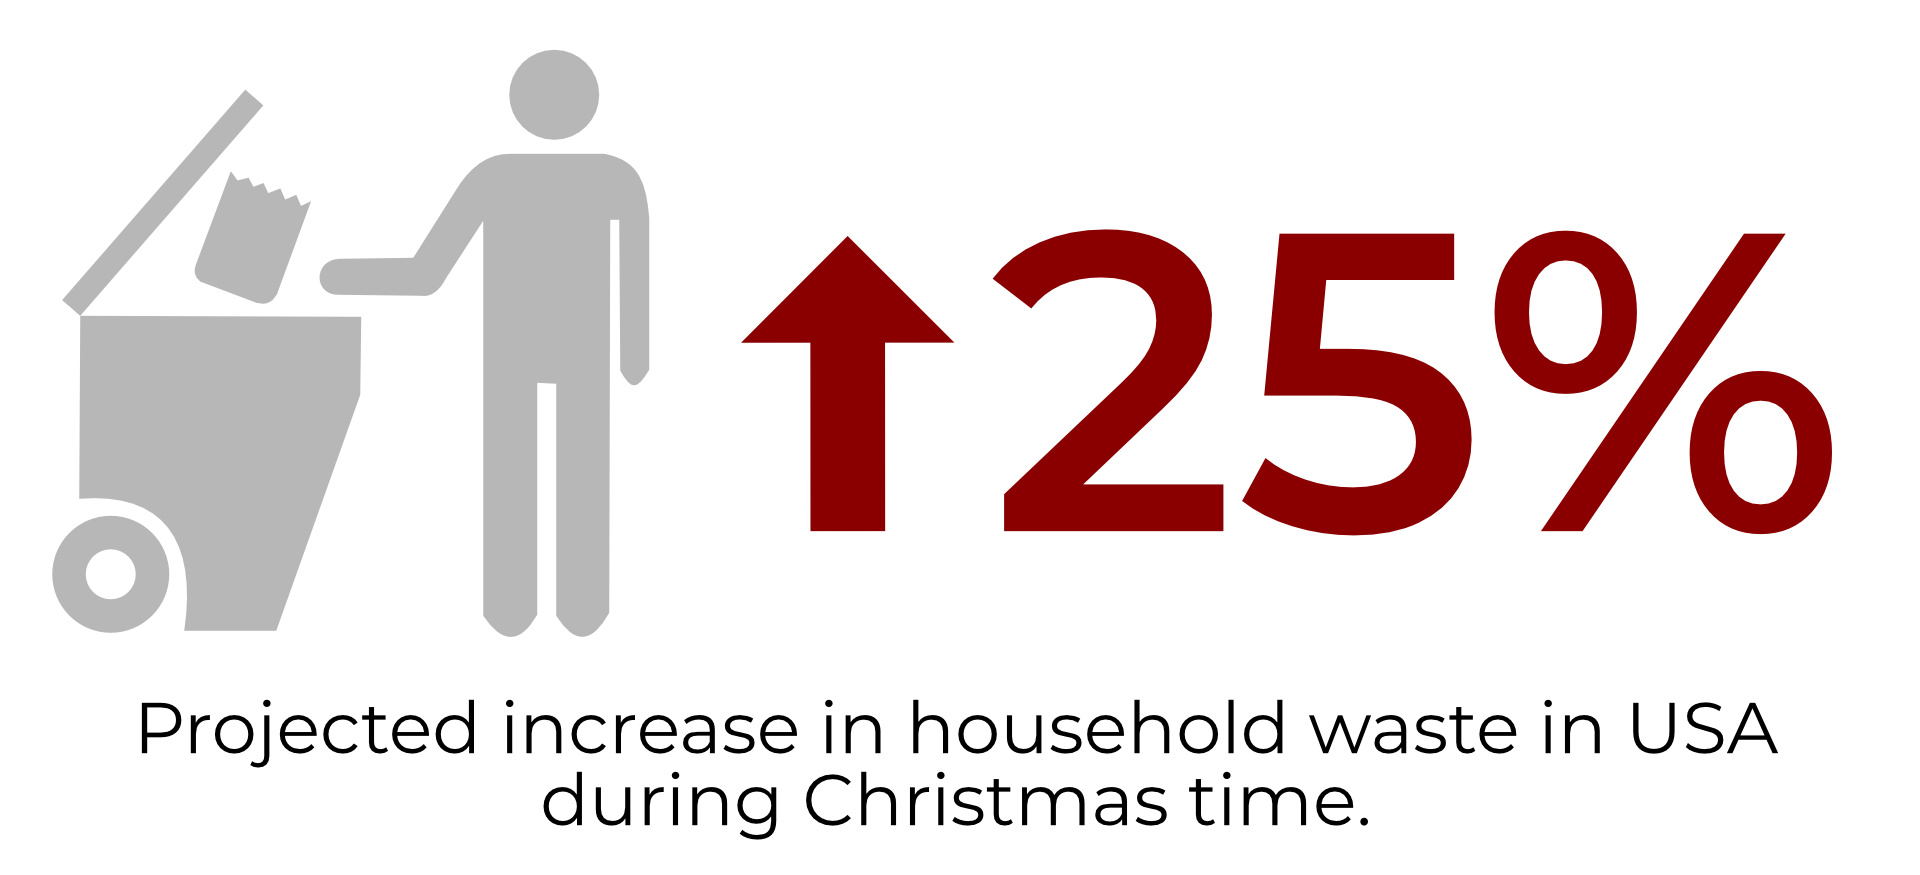 25% increase in household waste during Christmas